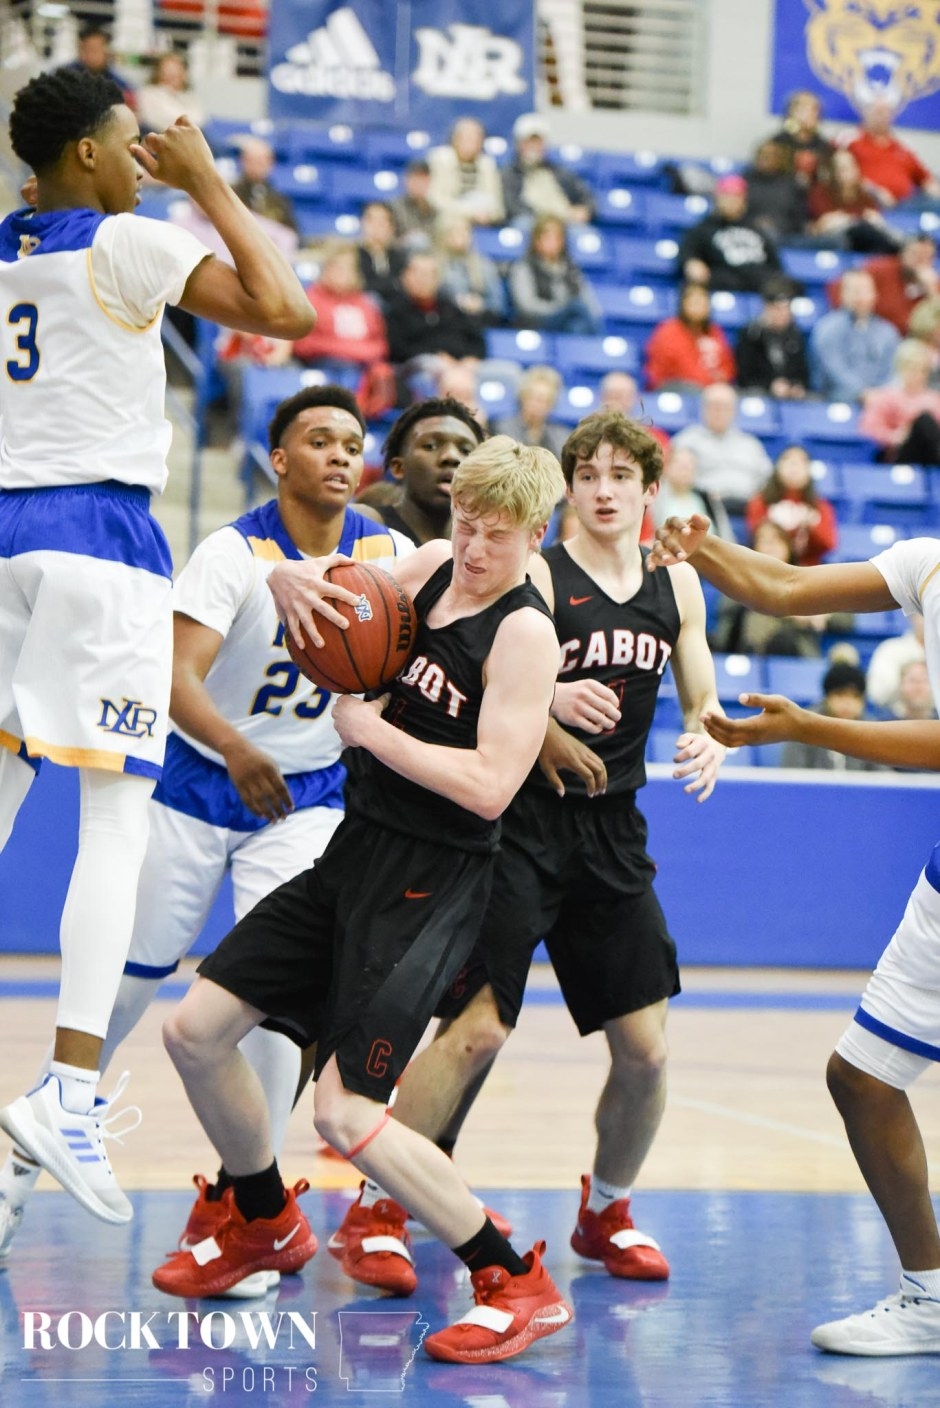 nlr_cabot_basketball_2019_(int)-109